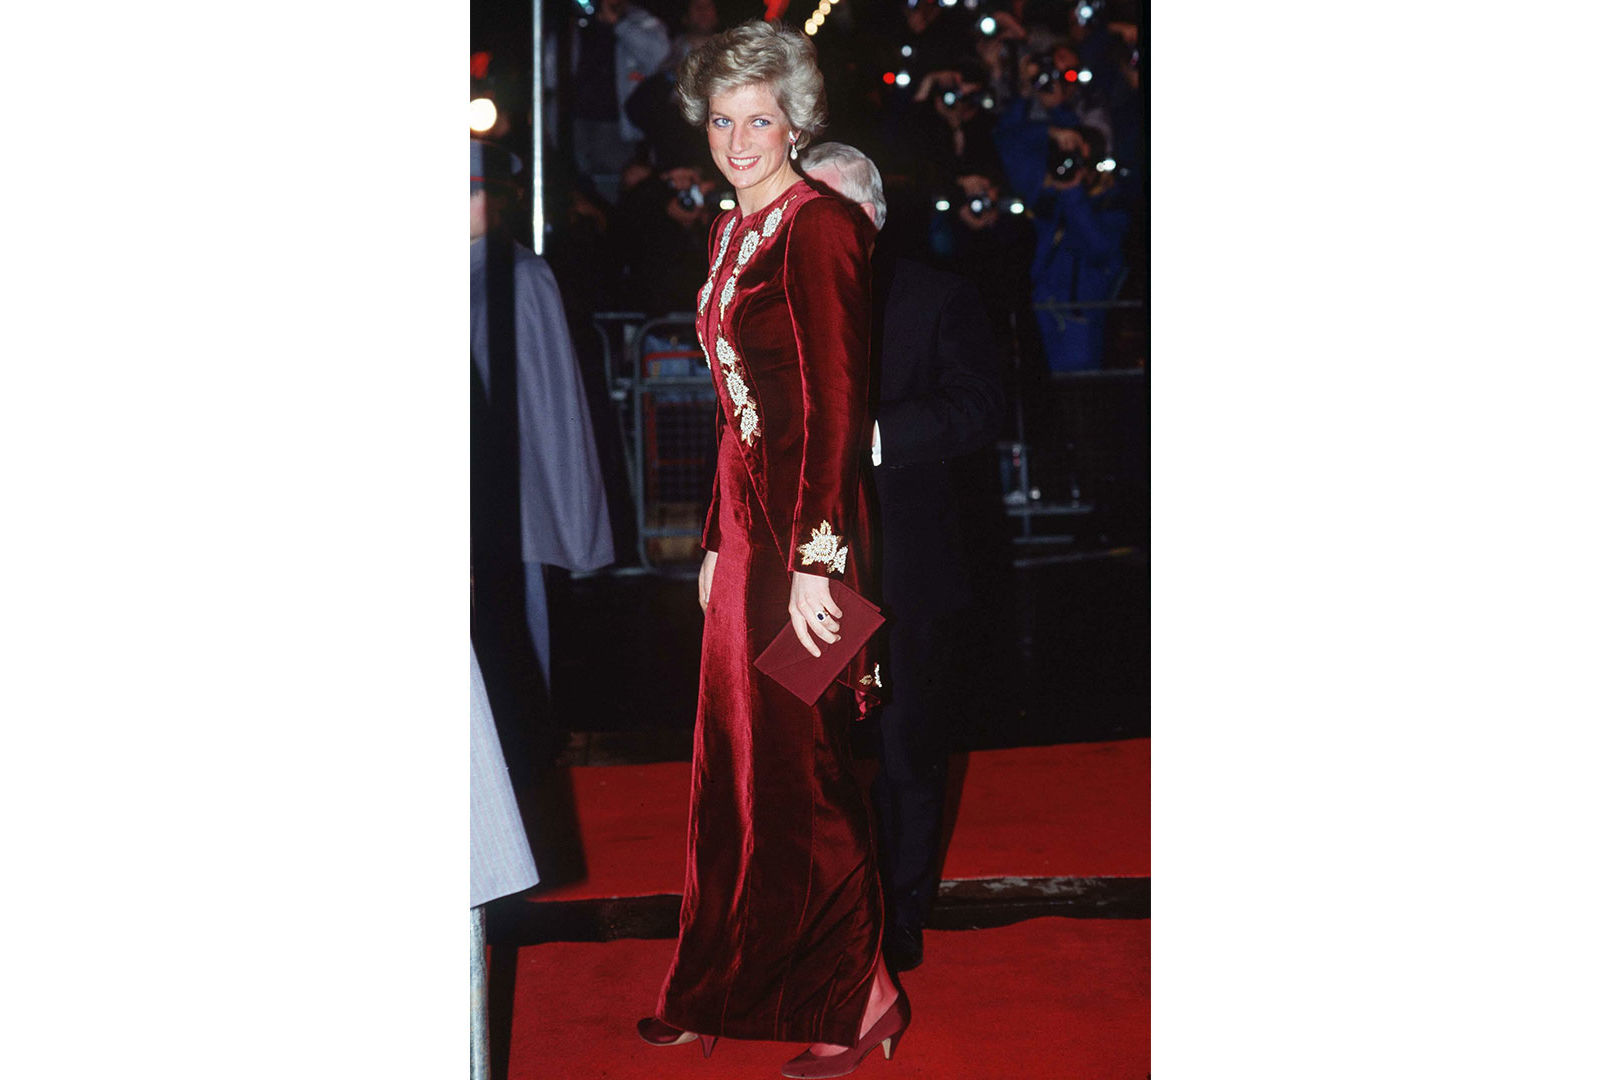 We Had NO IDEA Princess Diana Attended the London Premiere of Steel Magnolias!